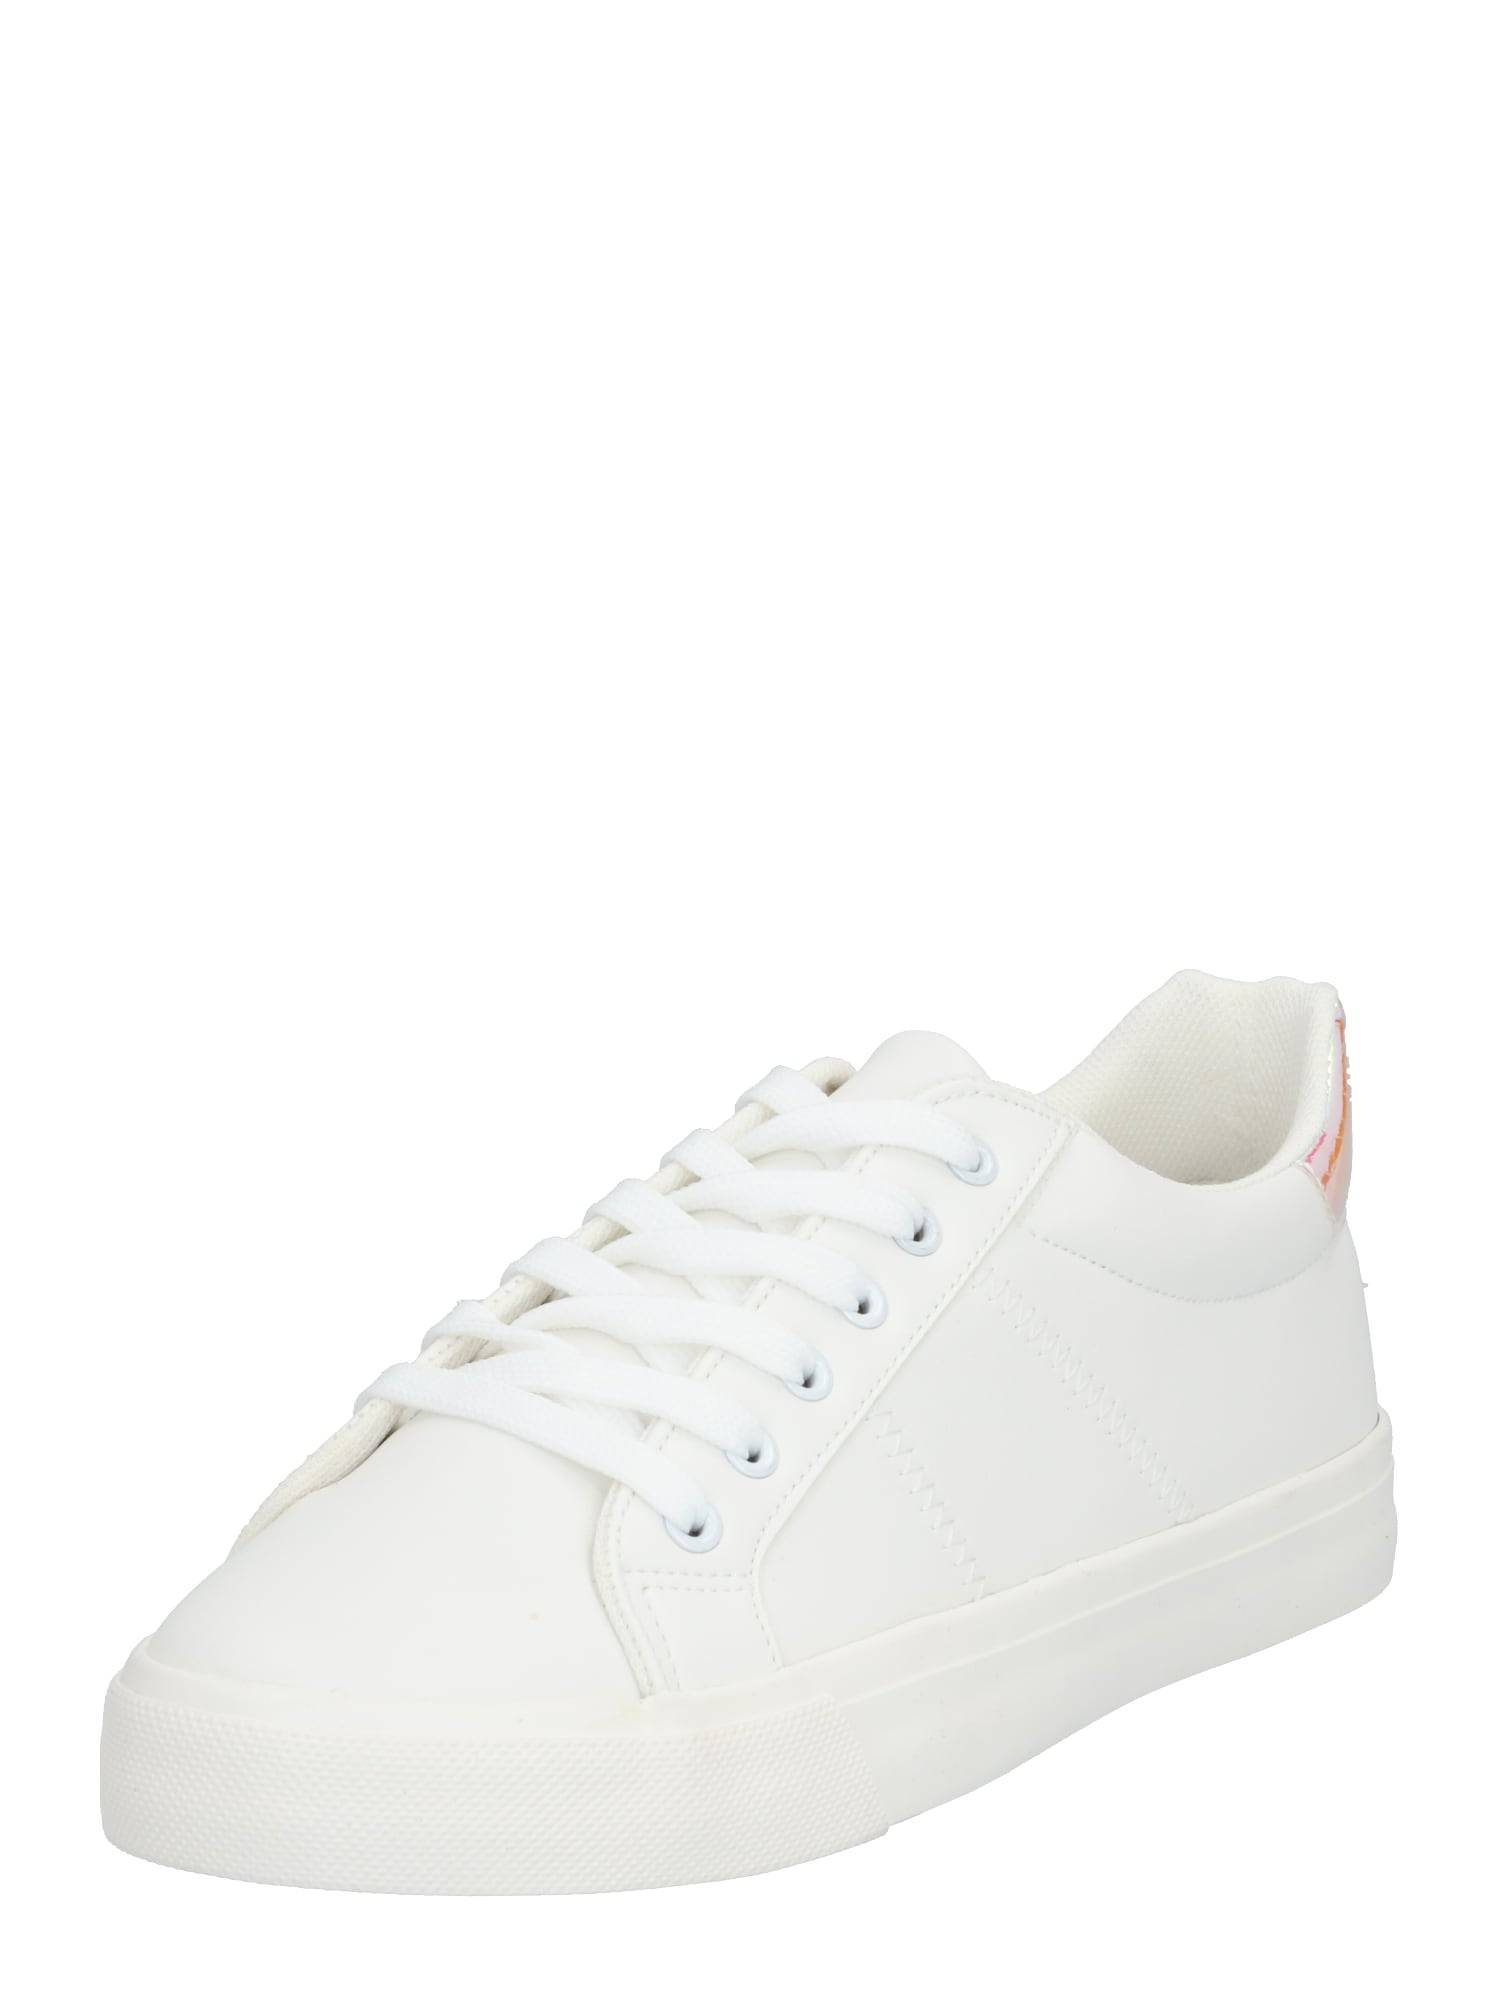 Dorothy Perkins Baskets basses 'INK TRAINER'  - Blanc - Taille: 3 - female